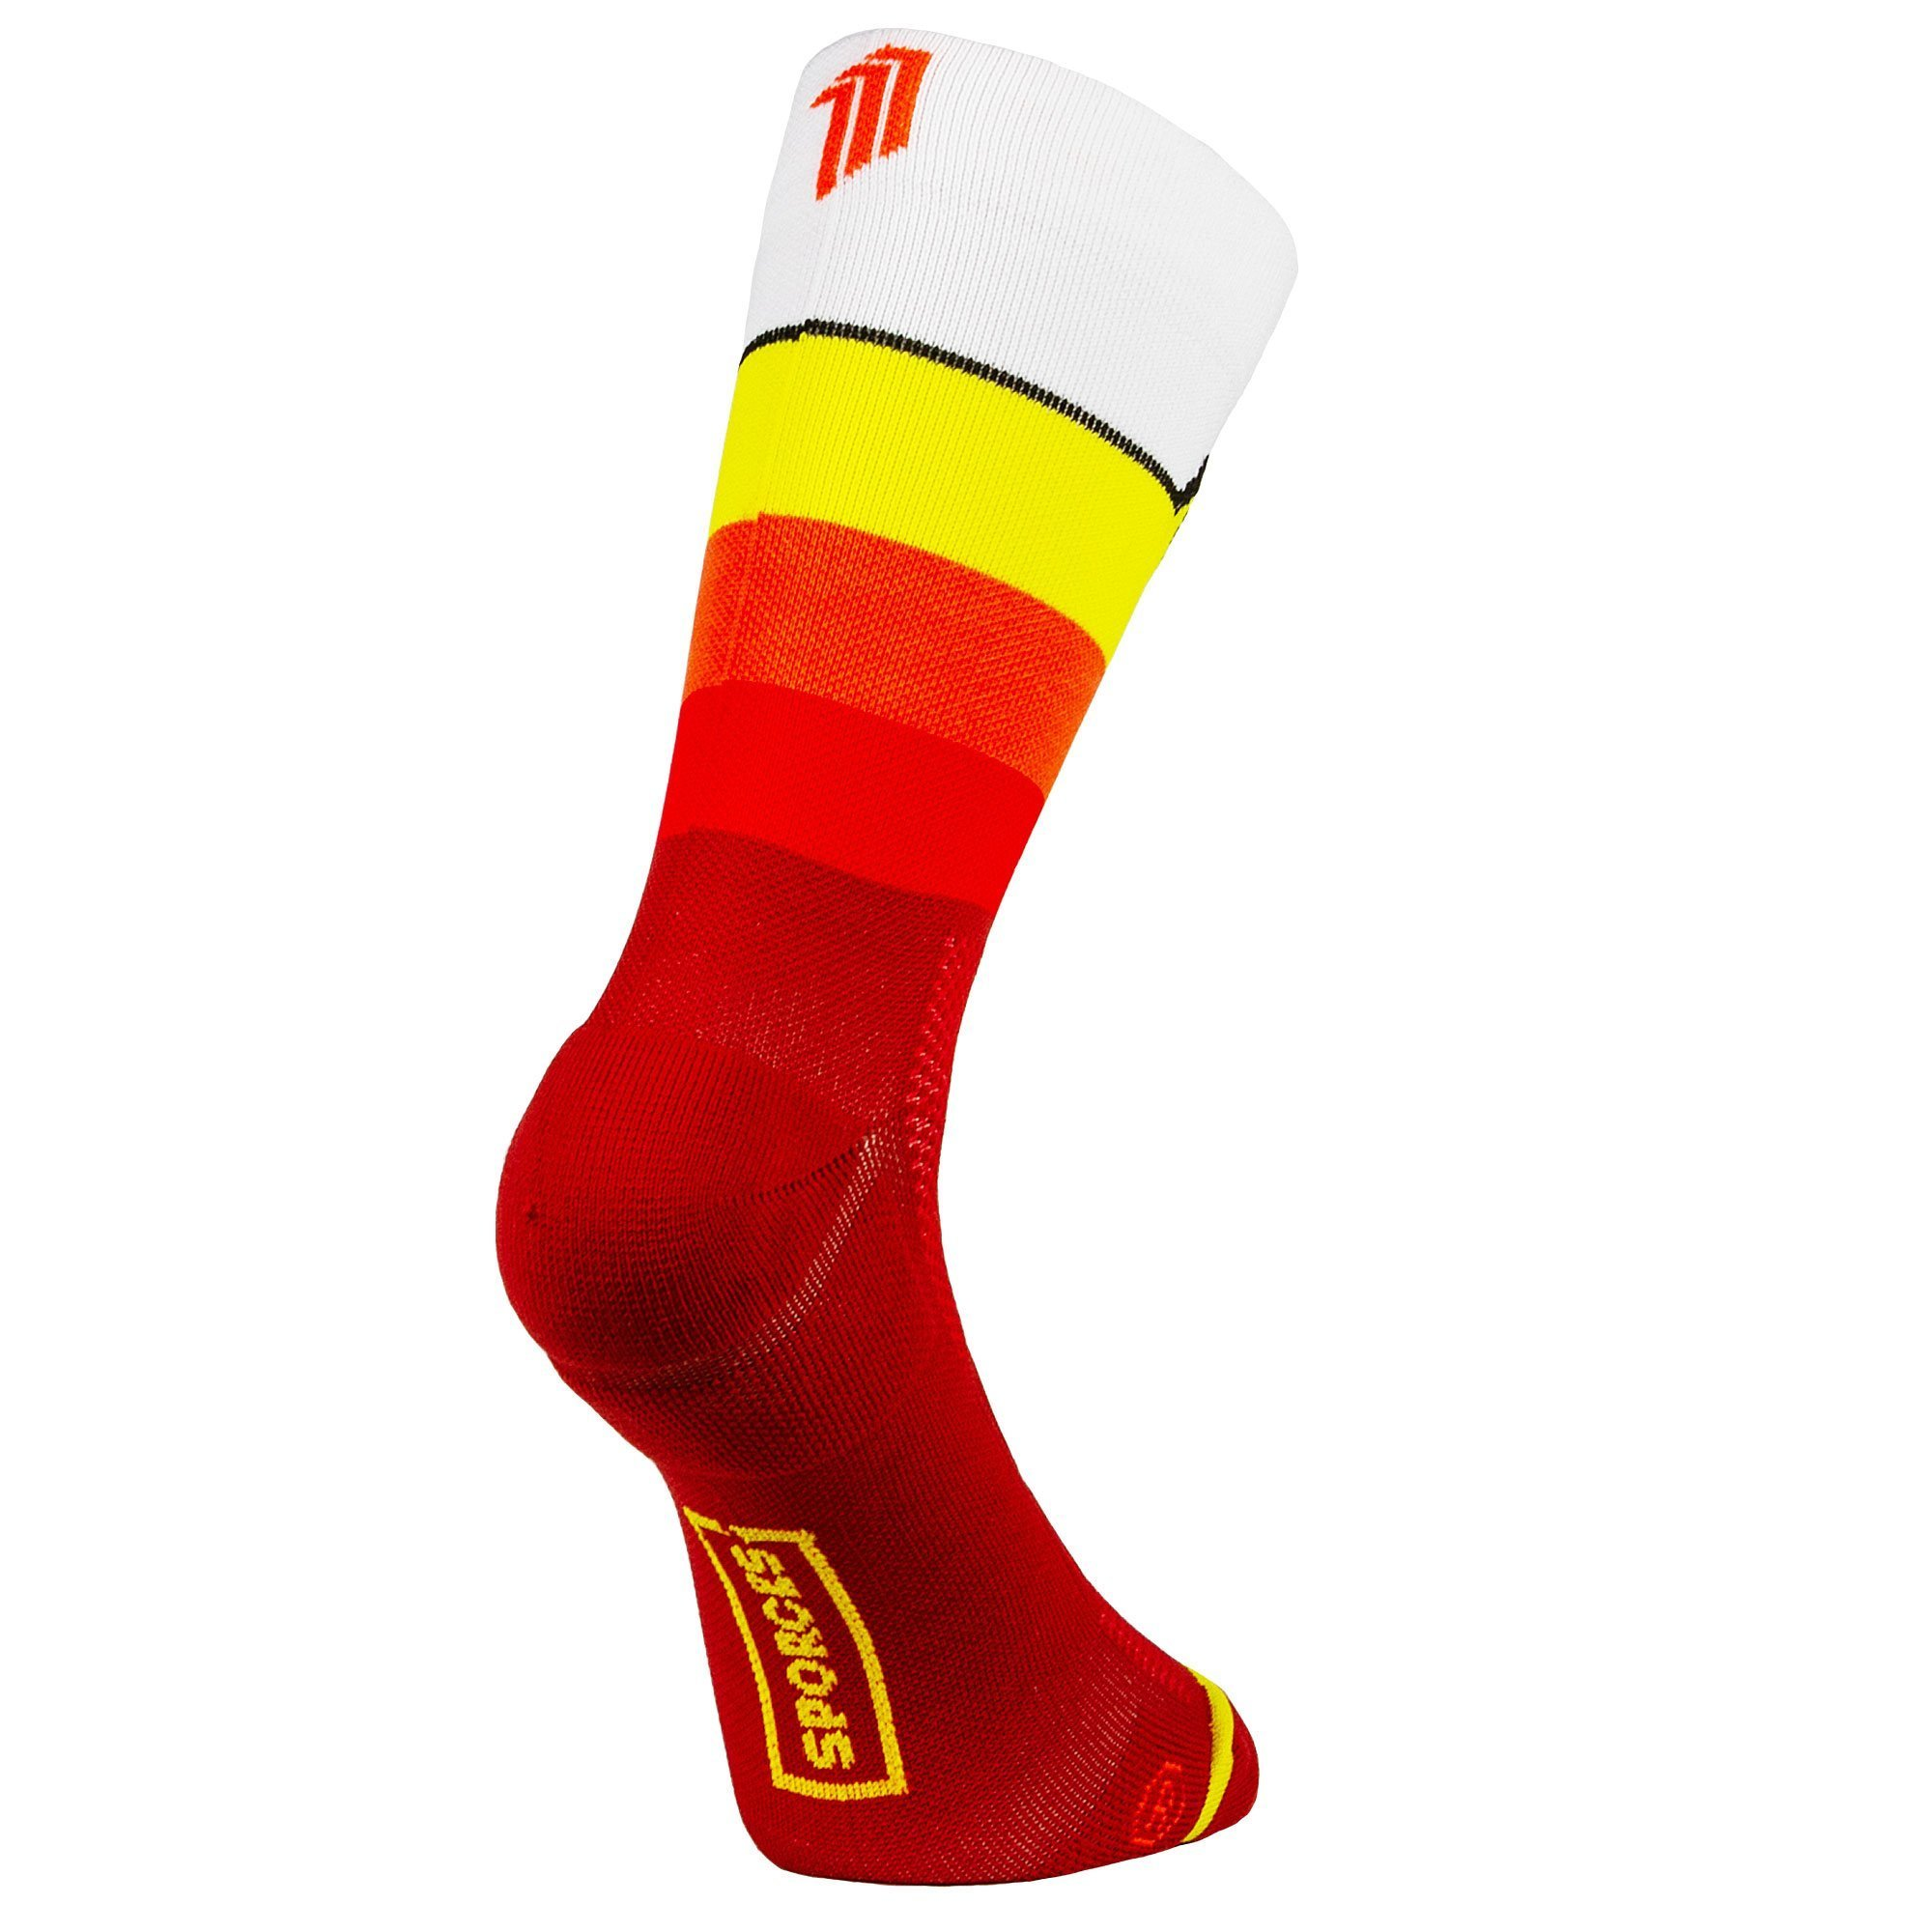 HR Red - running socks